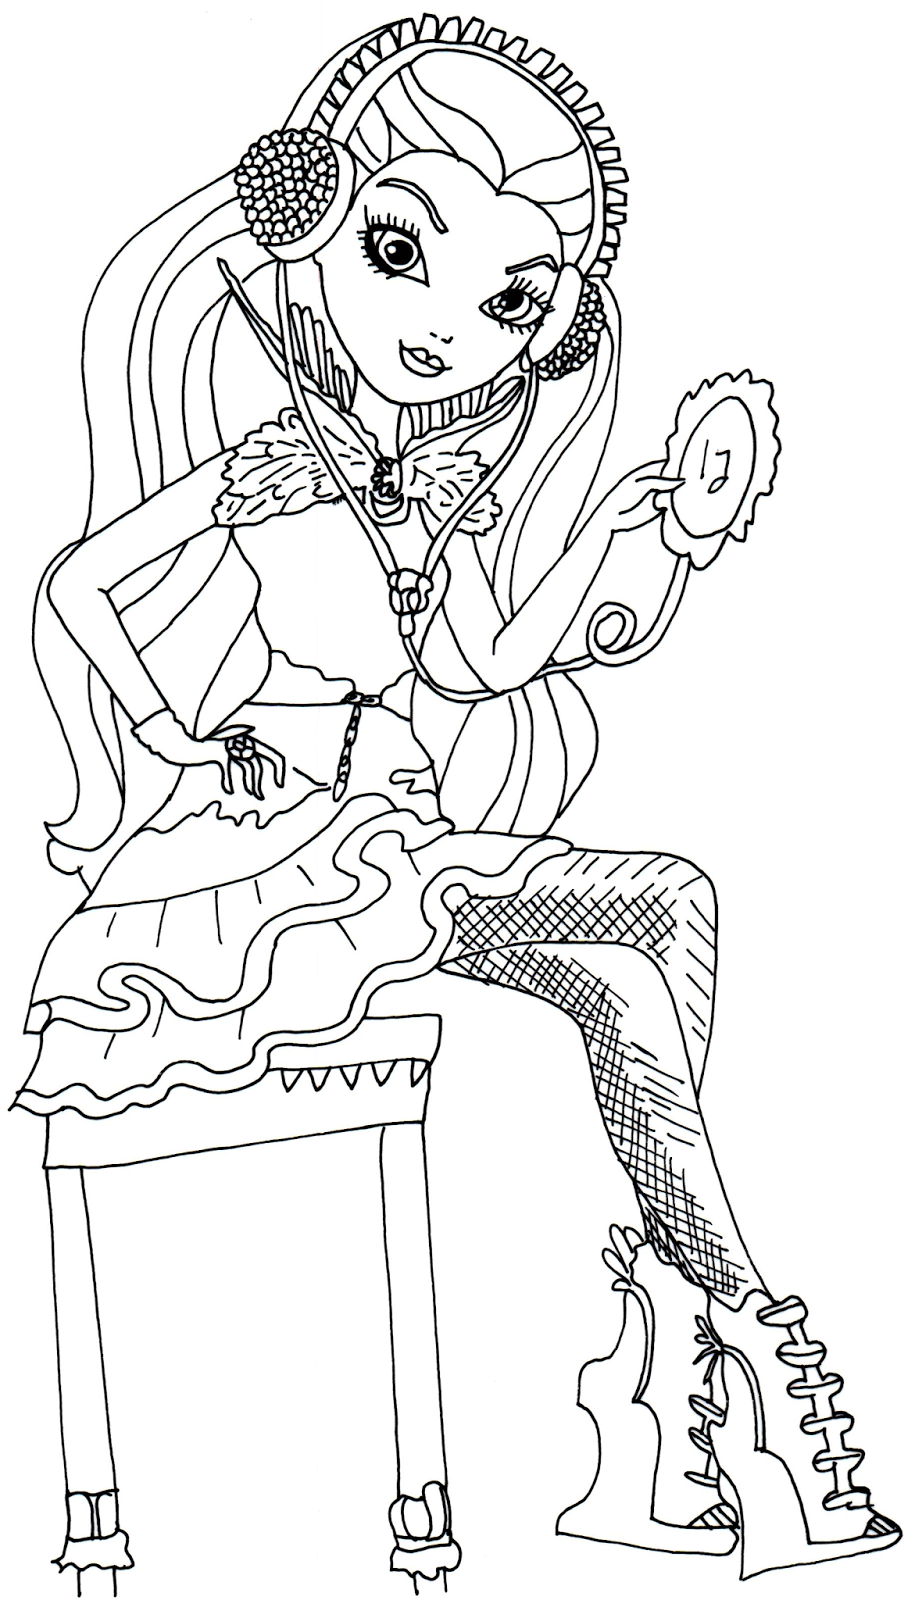 Ever After High Coloring Pages The Sun Flower Pages Coloring Pages Cute Coloring Pages Disney Coloring Pages